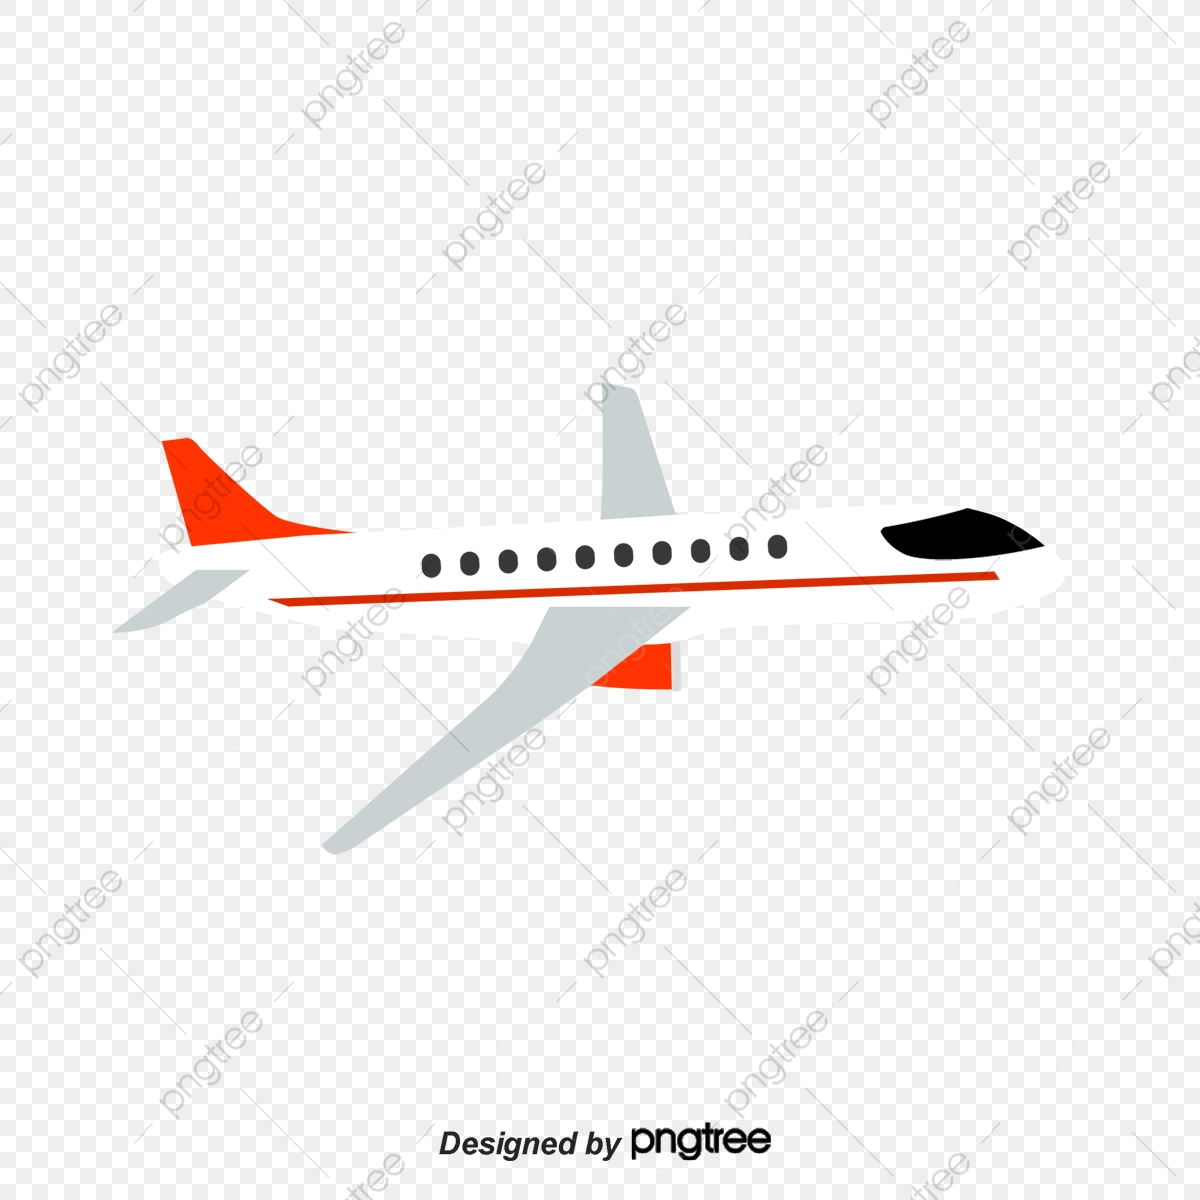 hight resolution of commercial use resource upgrade to premium plan and get license authorization upgradenow cartoon plane cartoon clipart